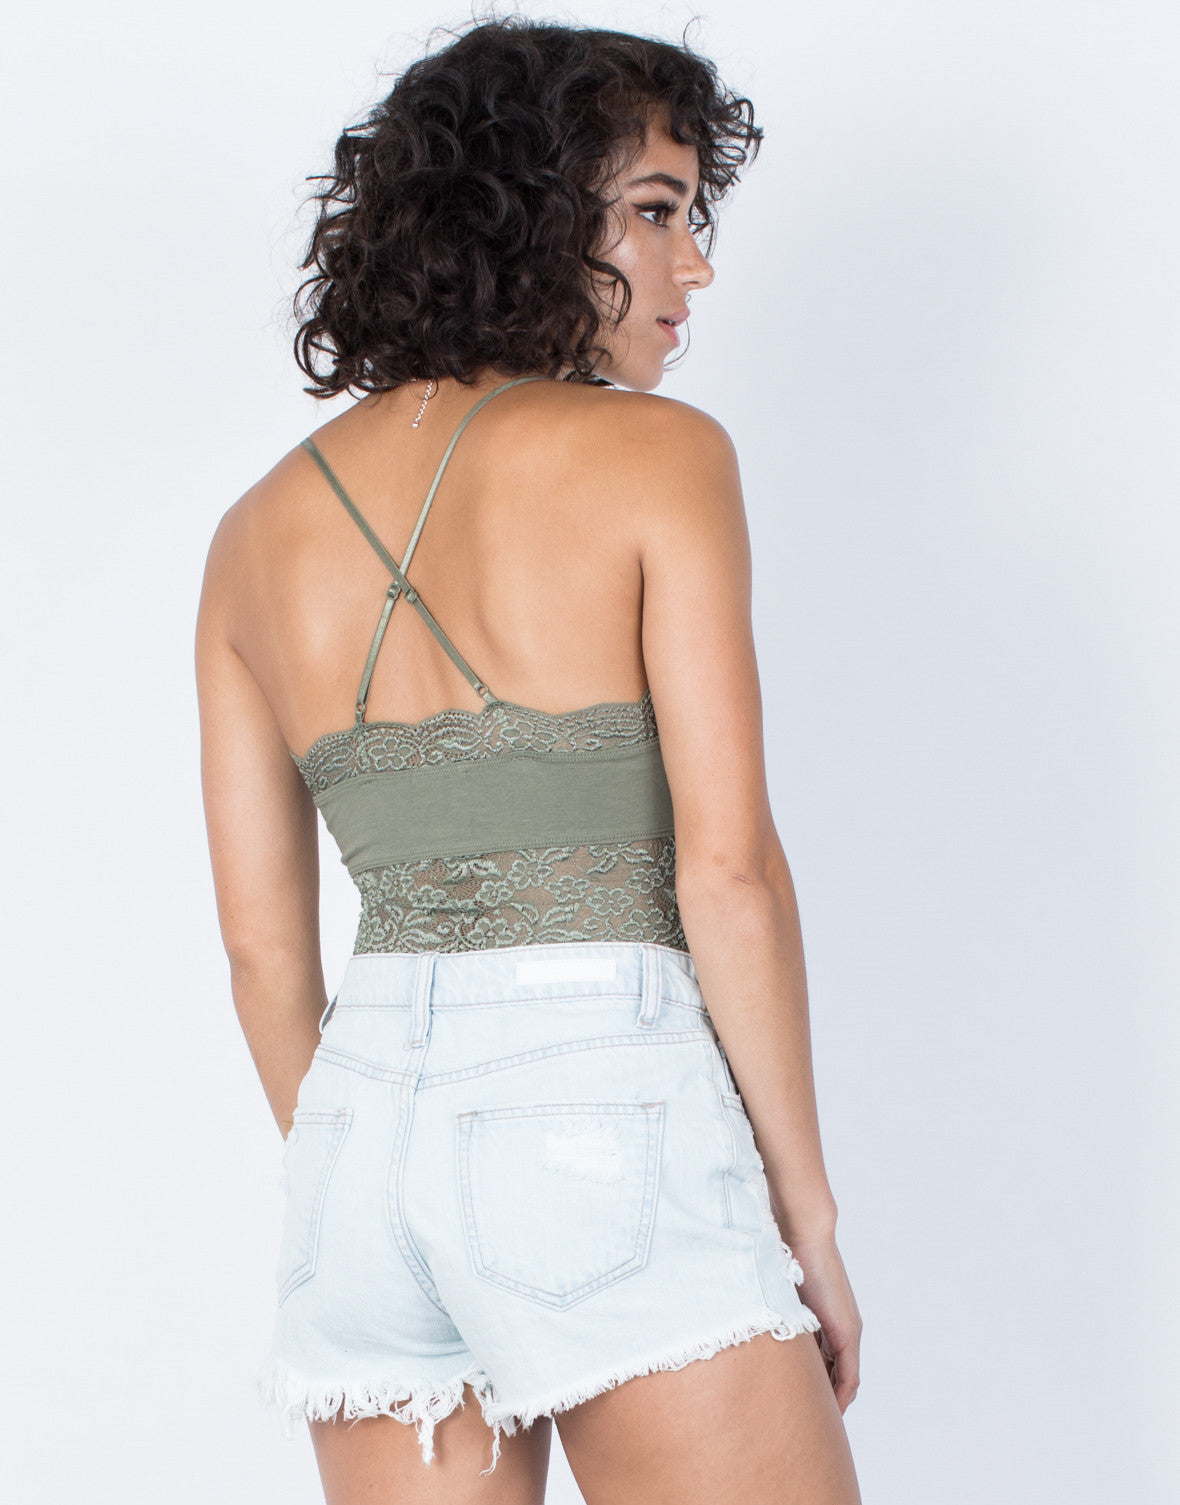 Olive Miranda Lacey Top - Back VIew